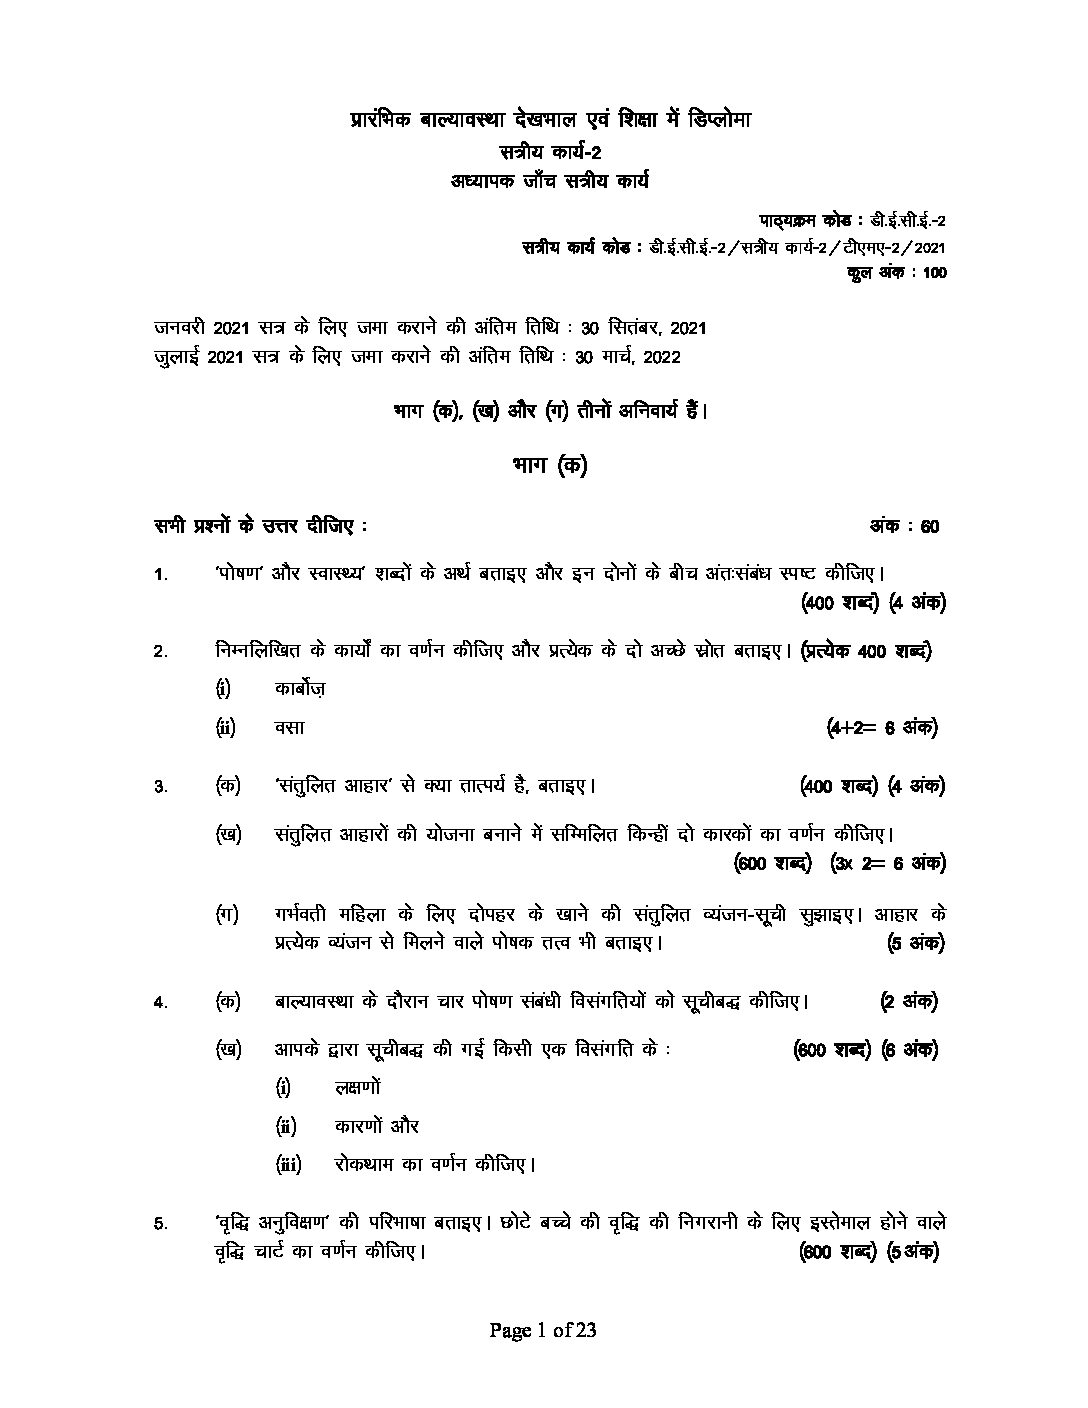 DECE-2 Child Health and Nutrition SOLVED ASSIGNMENT in Hindi 2021-22